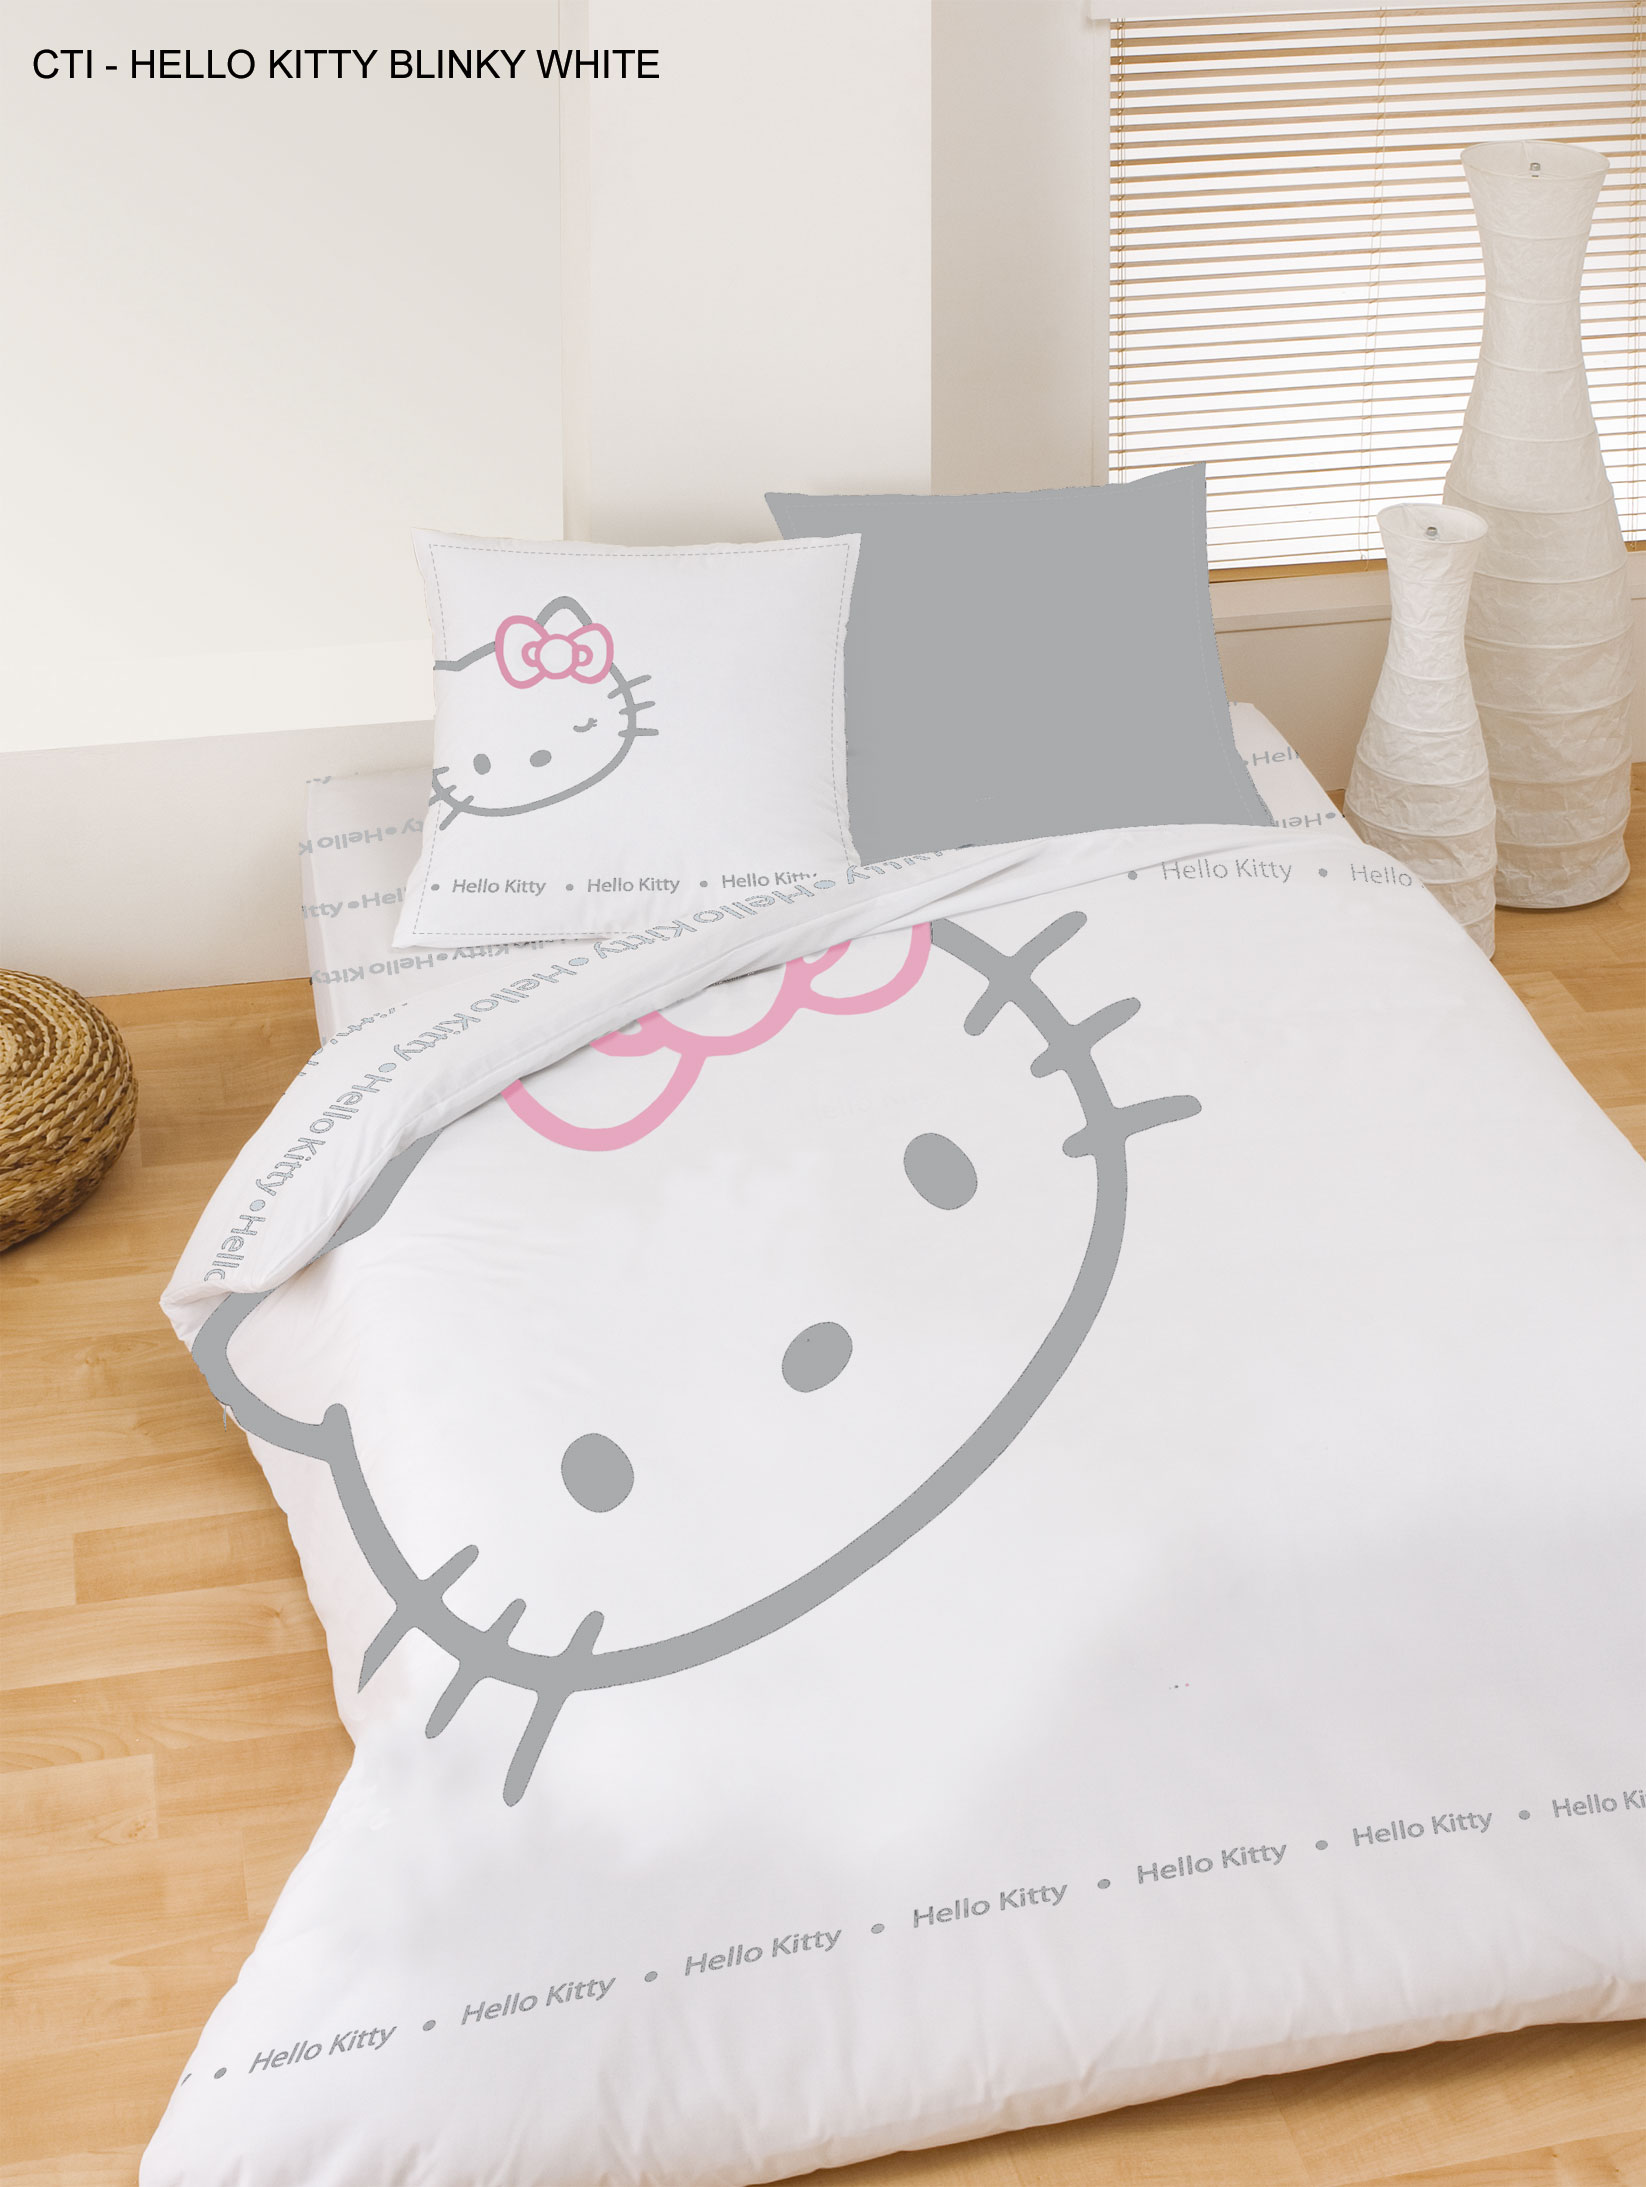 Drap housse HELLO KITTY BLINKY BLANC